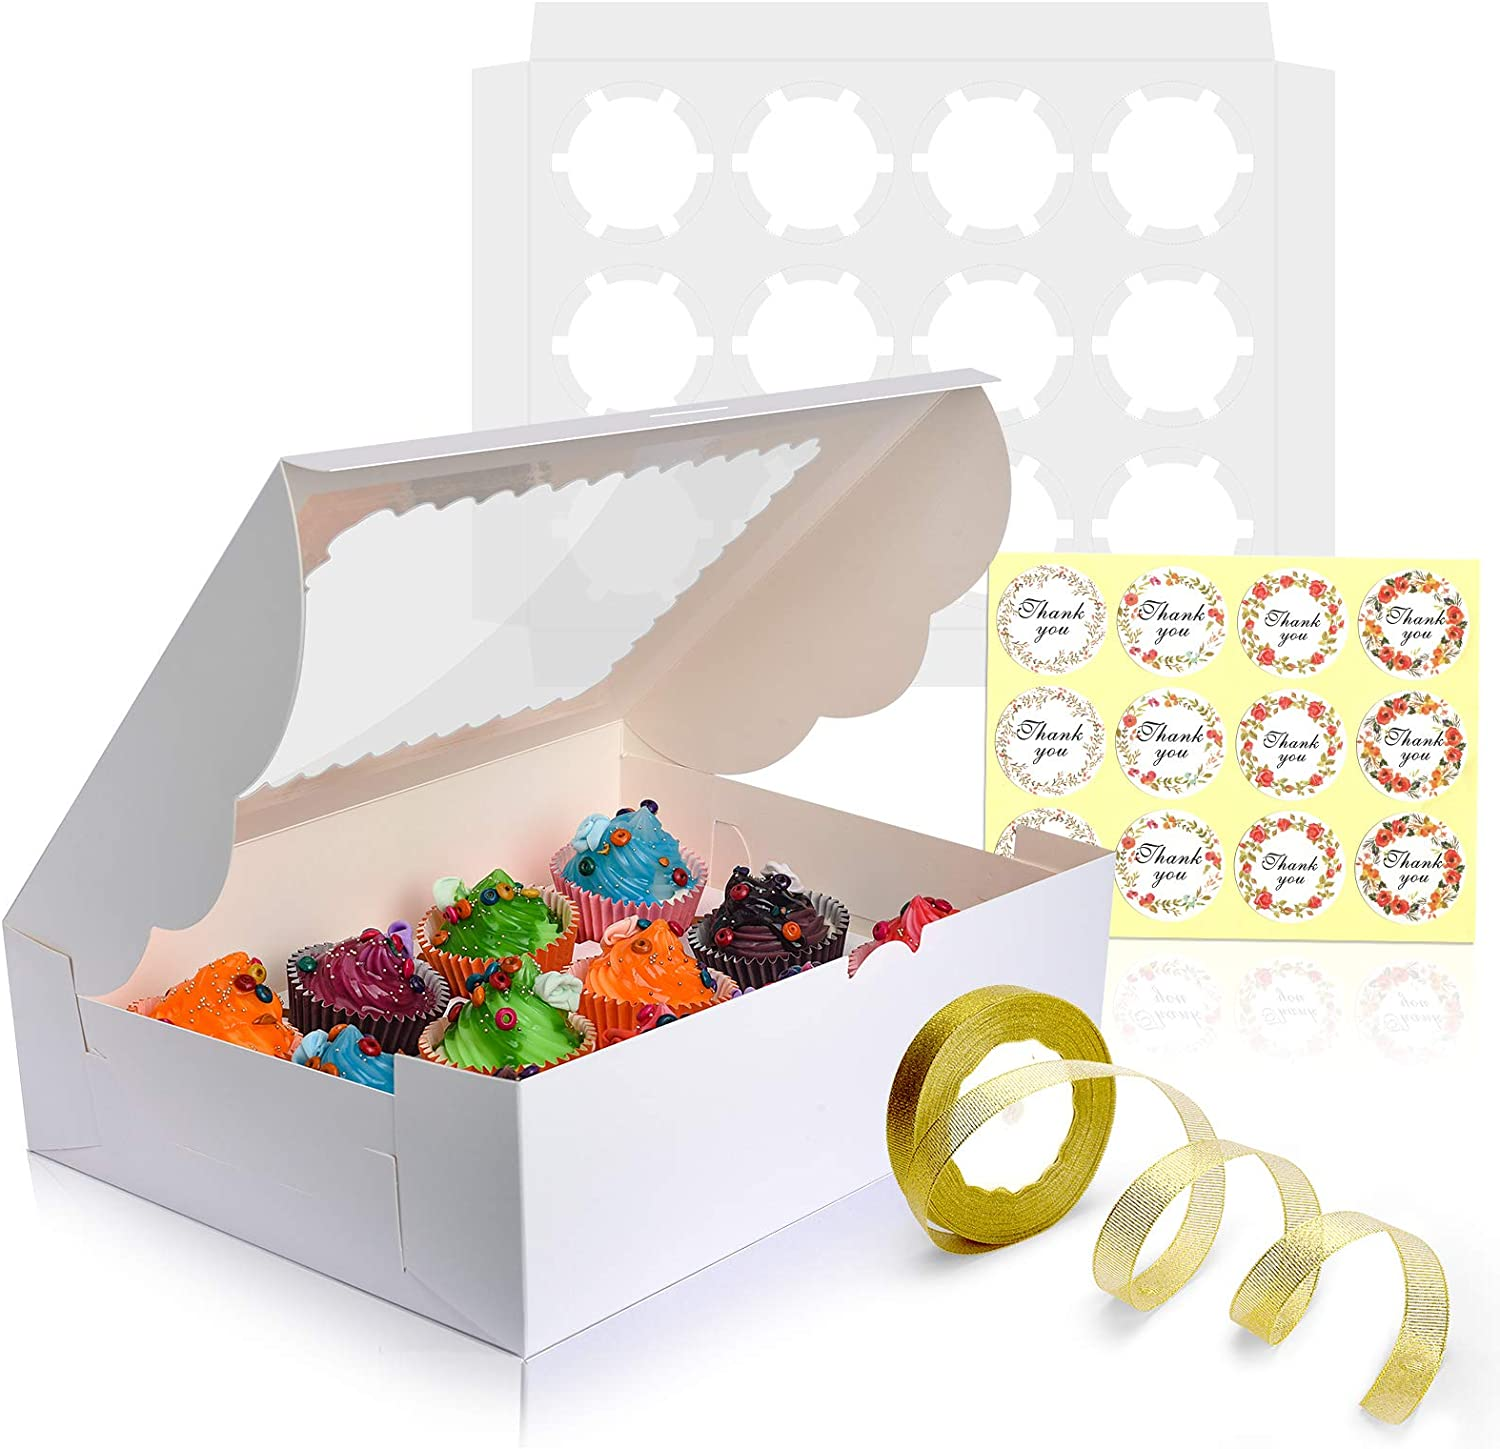 JUVI 12-Set Cupcake Boxes Hold 12 Standard Cupcakes,Dozen White Food Grade Cupcake Containers,Disposable Cardboard Cookie Carrier,Bakery Gift Boxes,Large Window Holiday Holders for Treats and Pastries